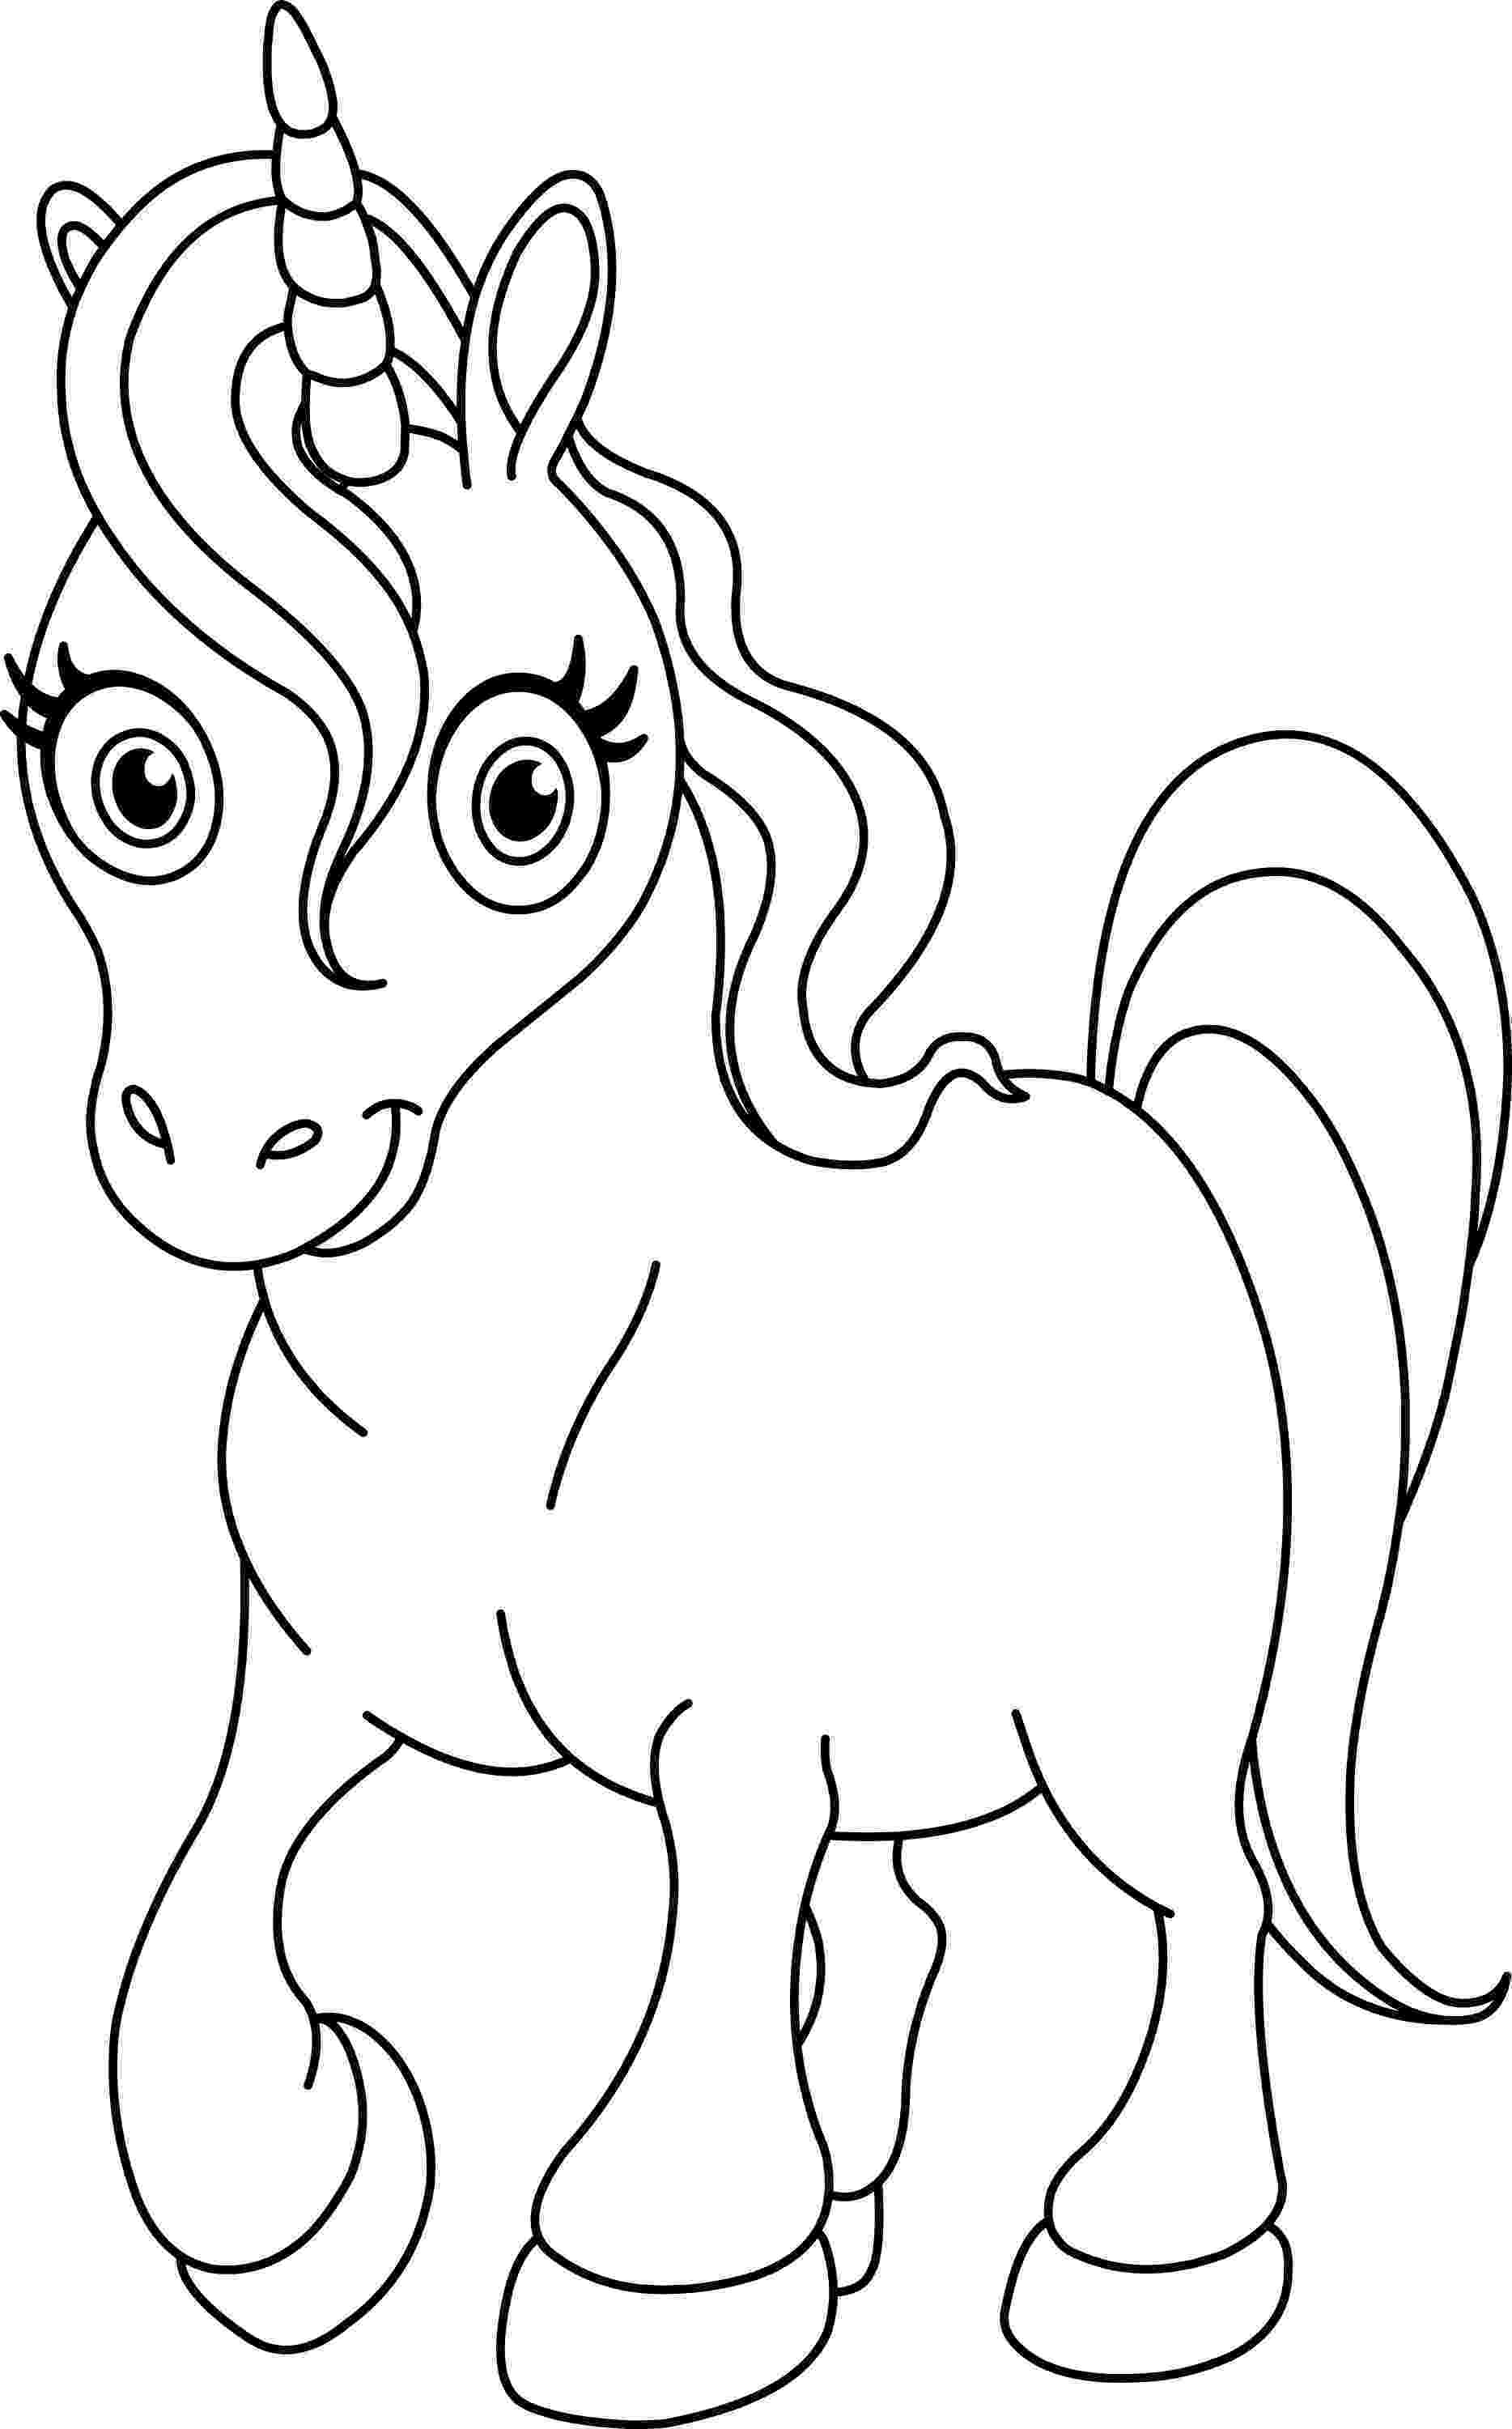 unicorn colouring coloring pages unicorn coloring pages free and printable unicorn colouring